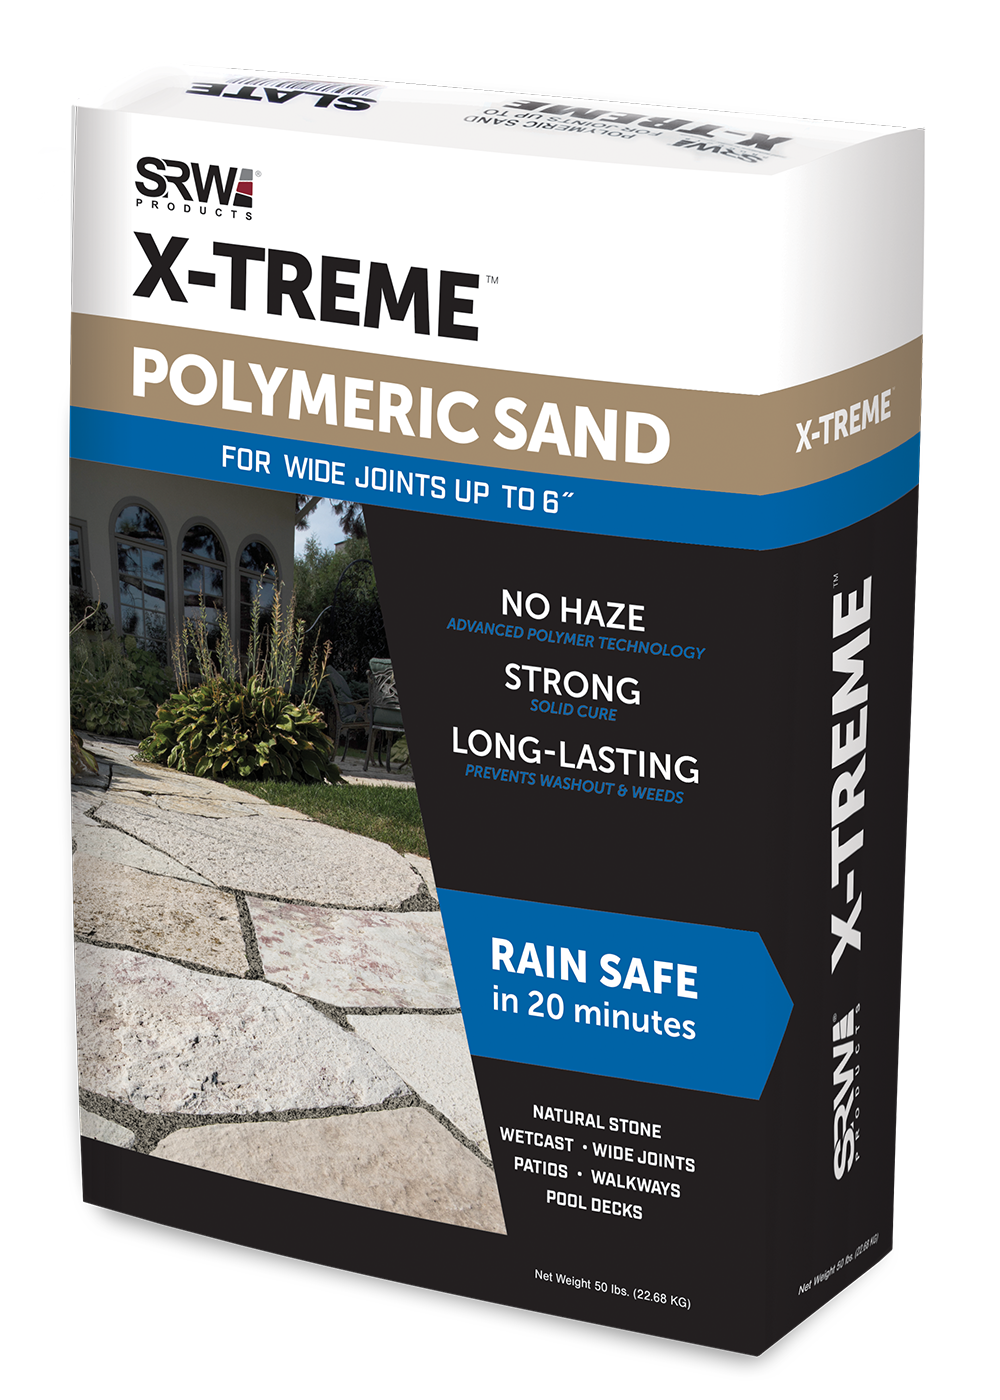 X-treme Product Package